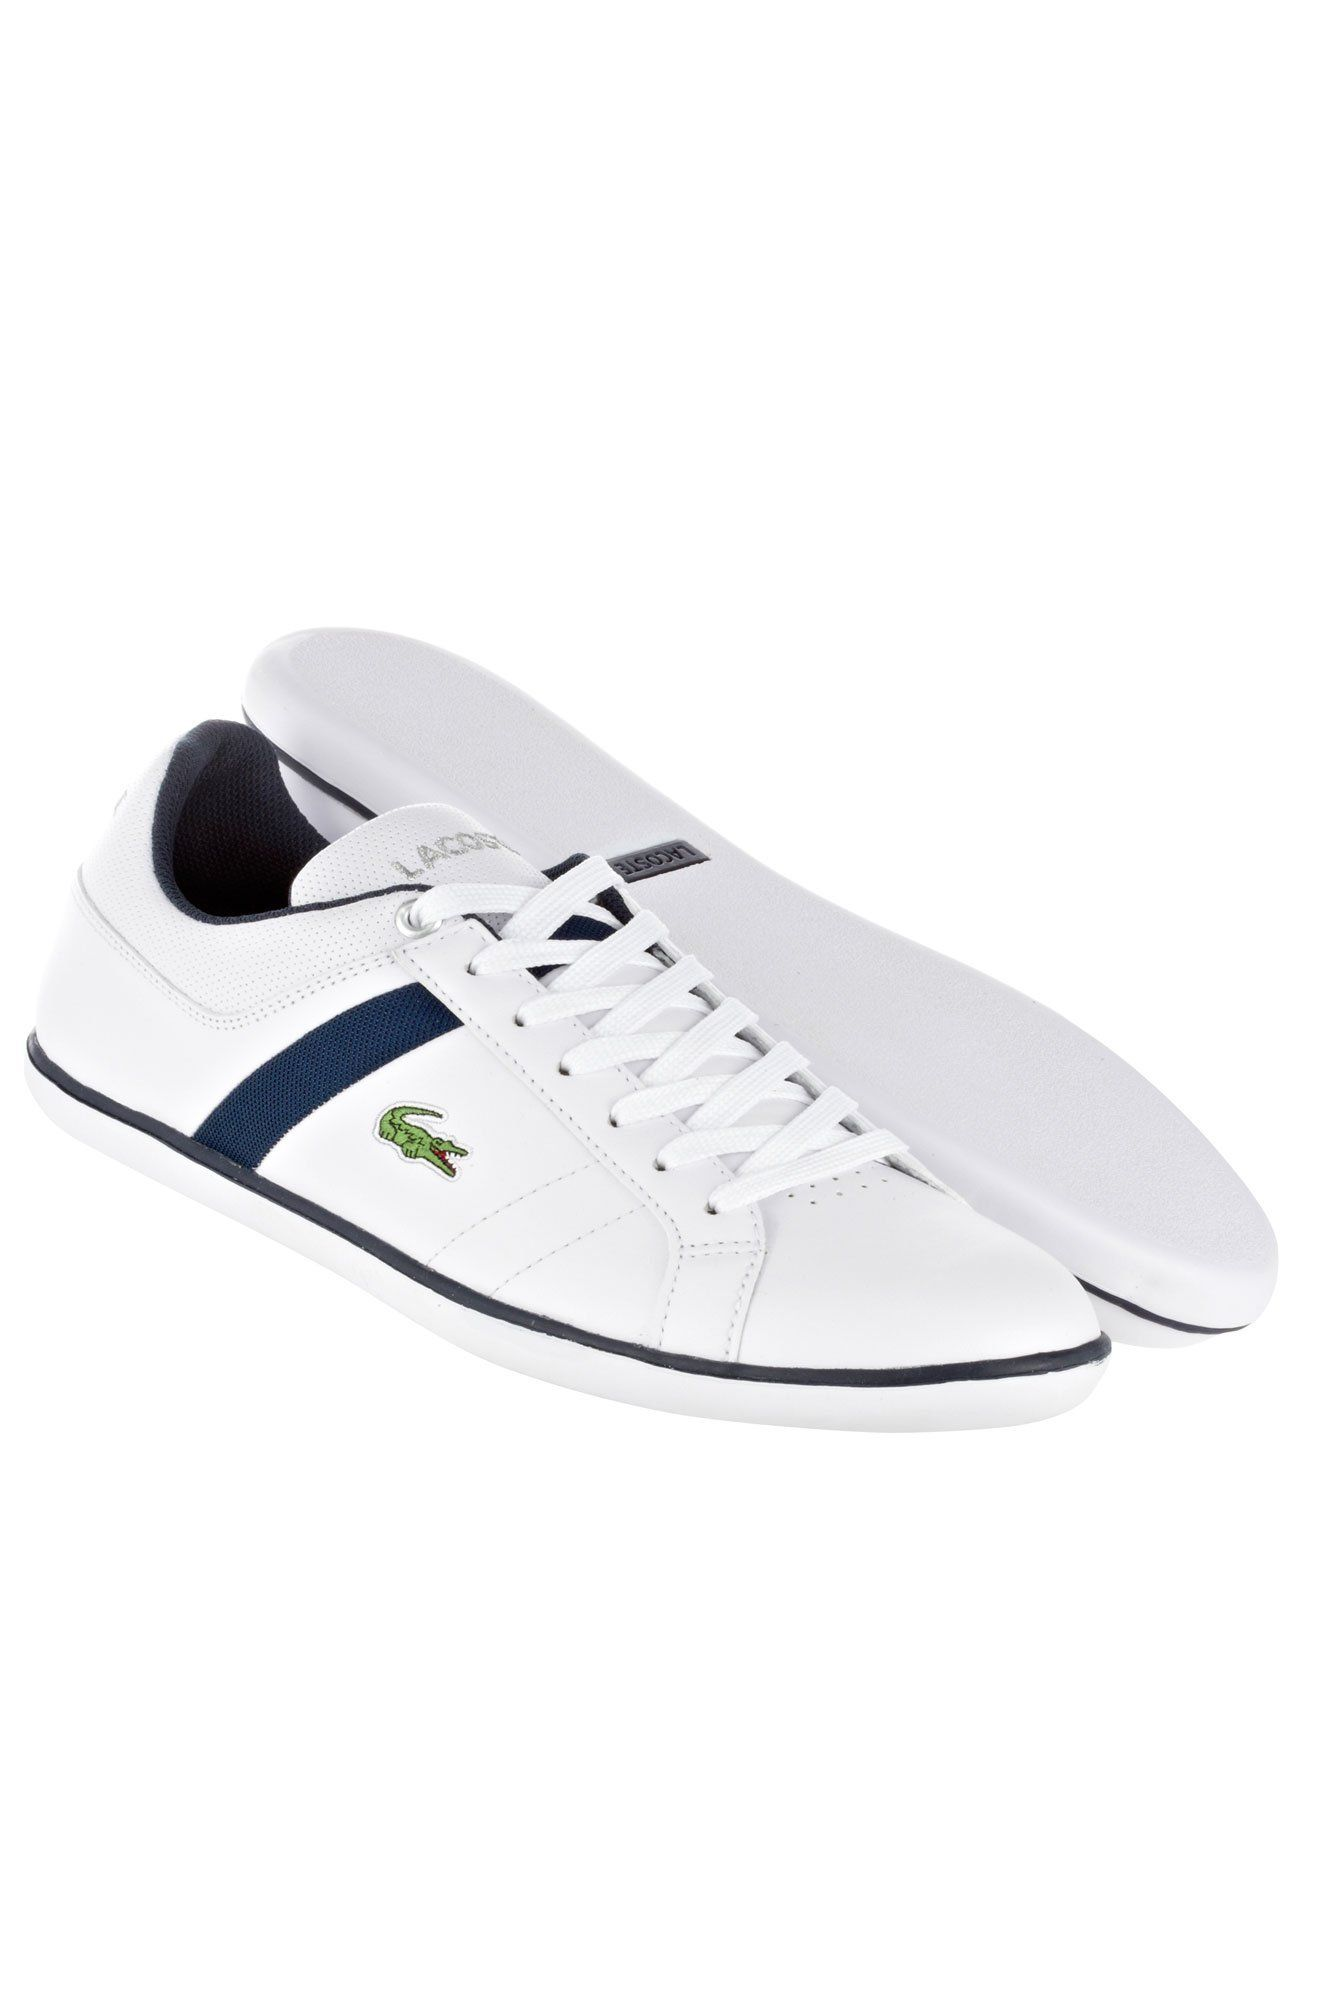 373267247d Lacoste Men's Evershotcr - $100.00 | Shoes in 2019 | Zapatos ...